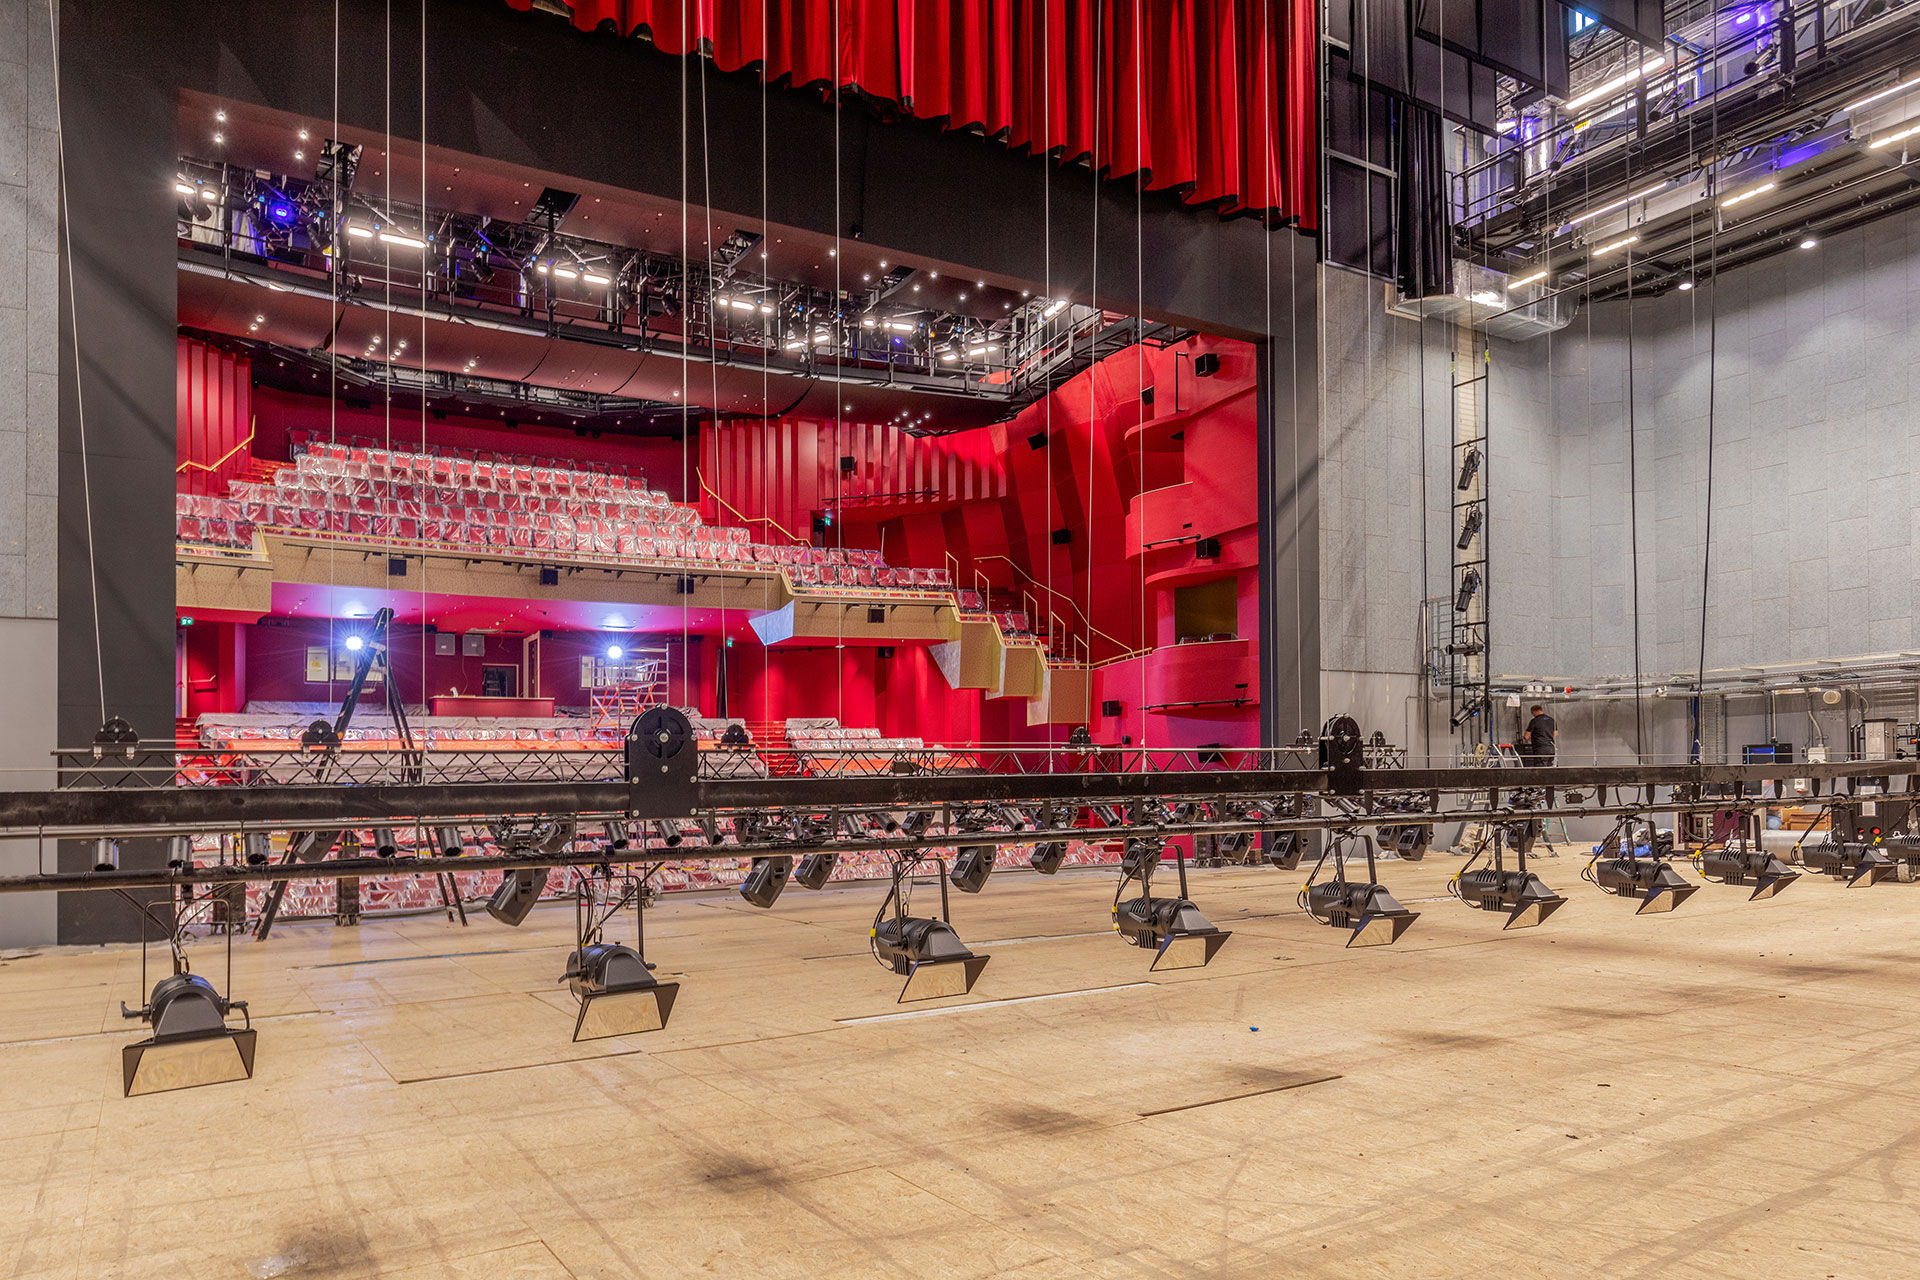 AFAS Theater update